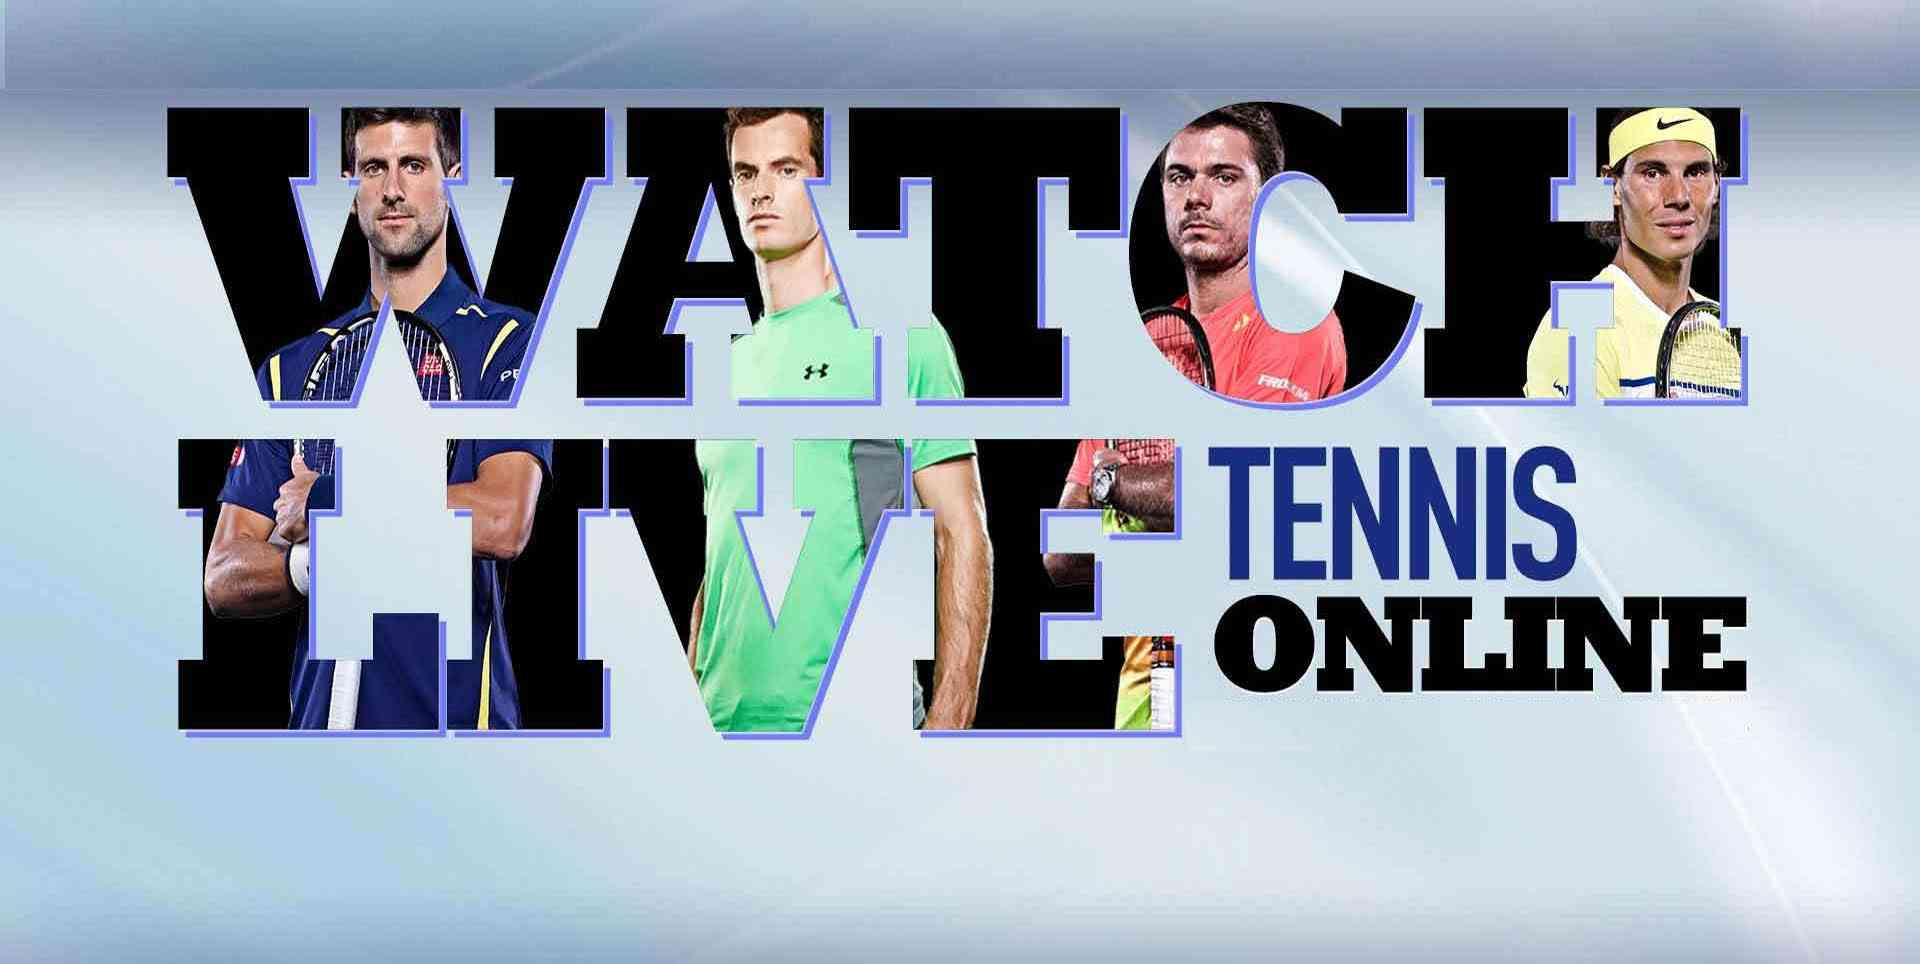 Watch 1st Round I. Karlovic vs F. Dancevic Online